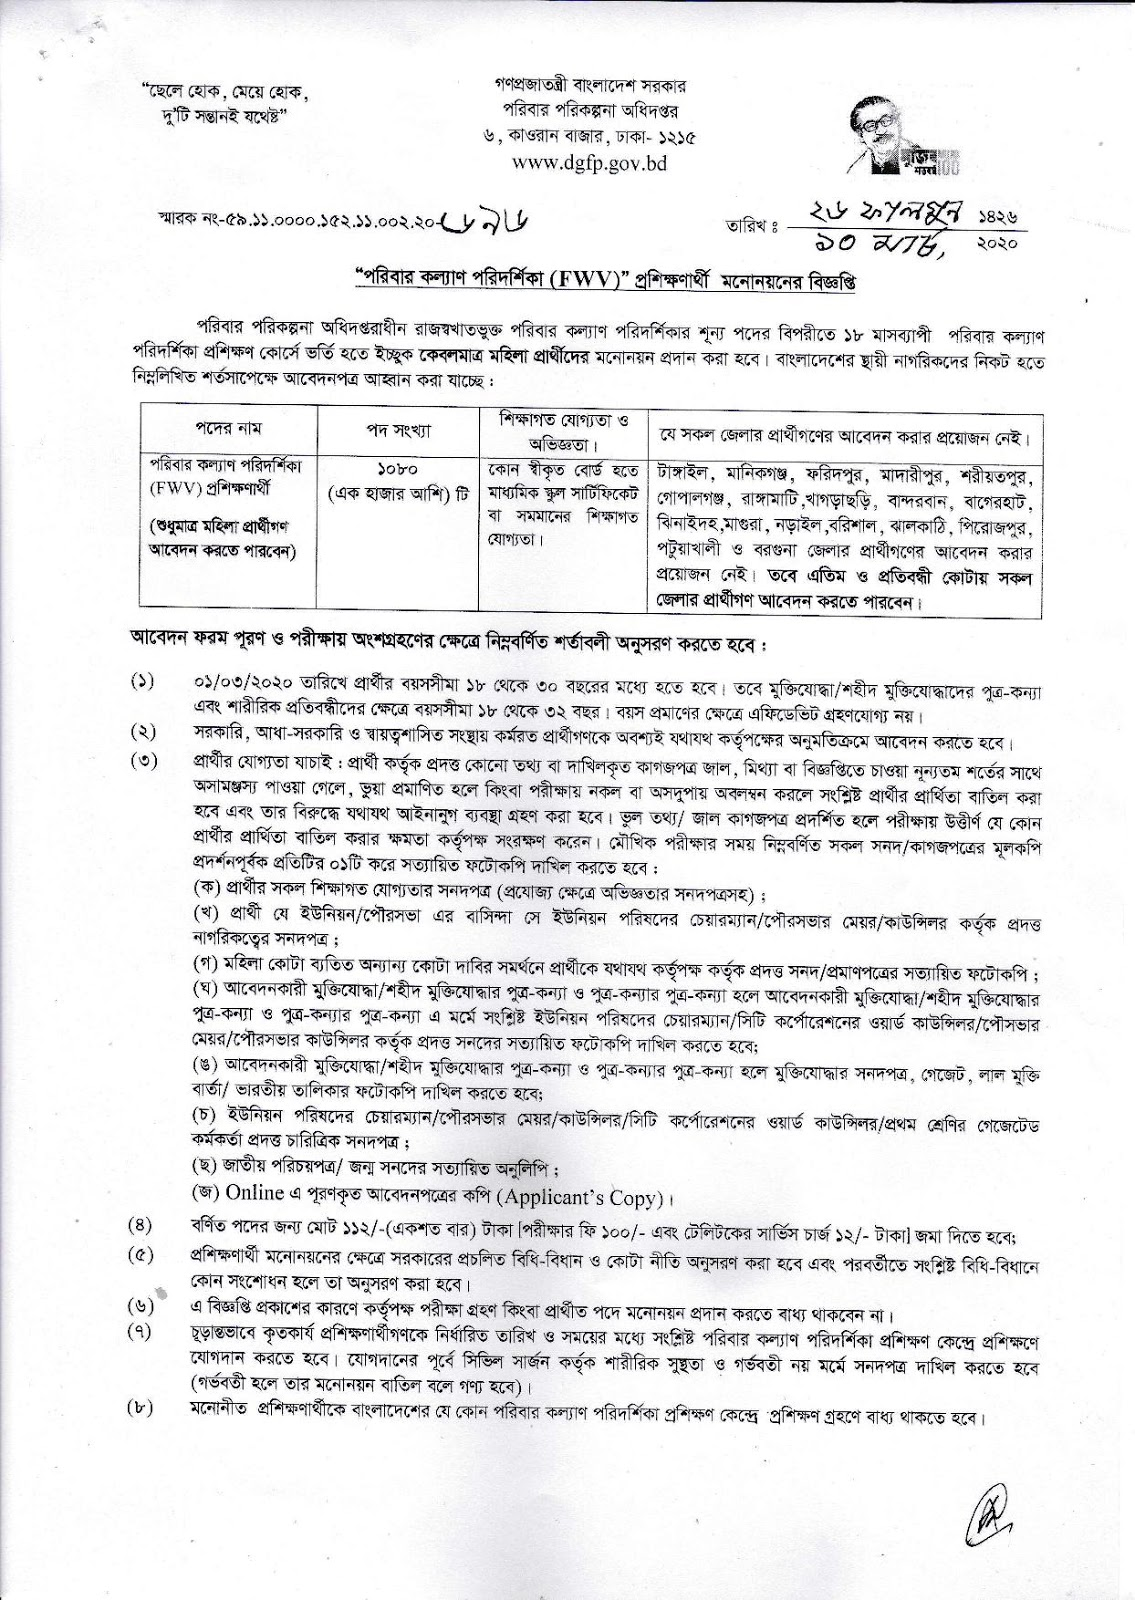 Directorate General of Family Planning Job